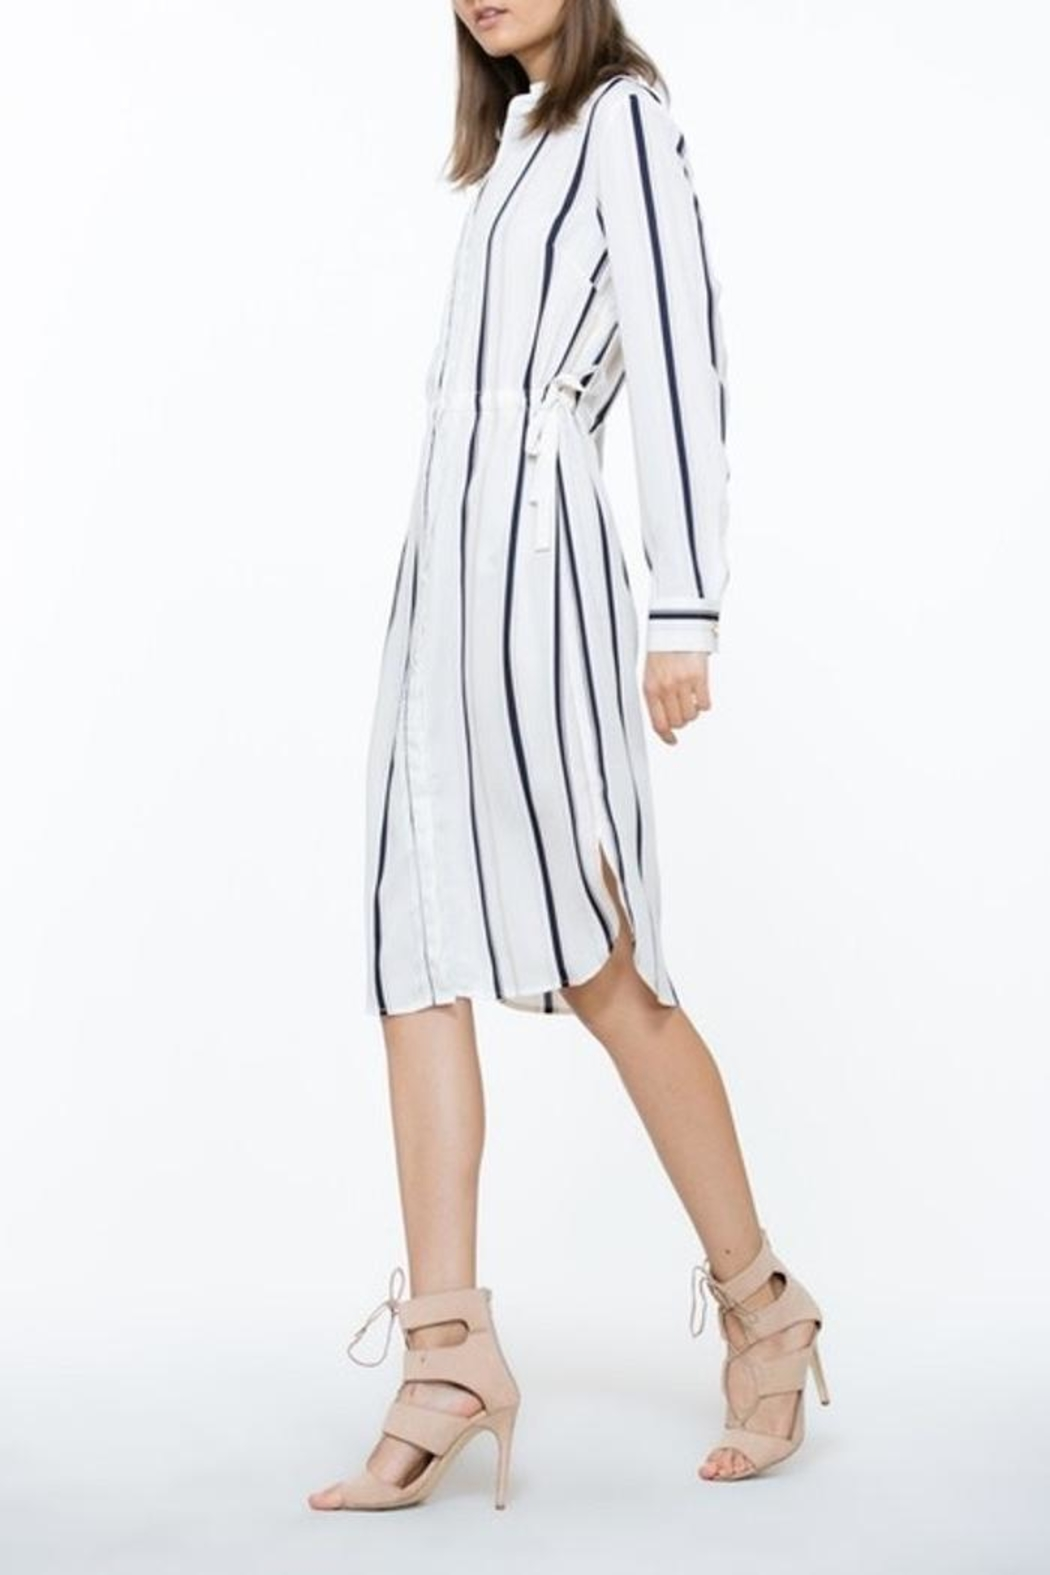 The Room Ivory Stripe Dress - Side Cropped Image